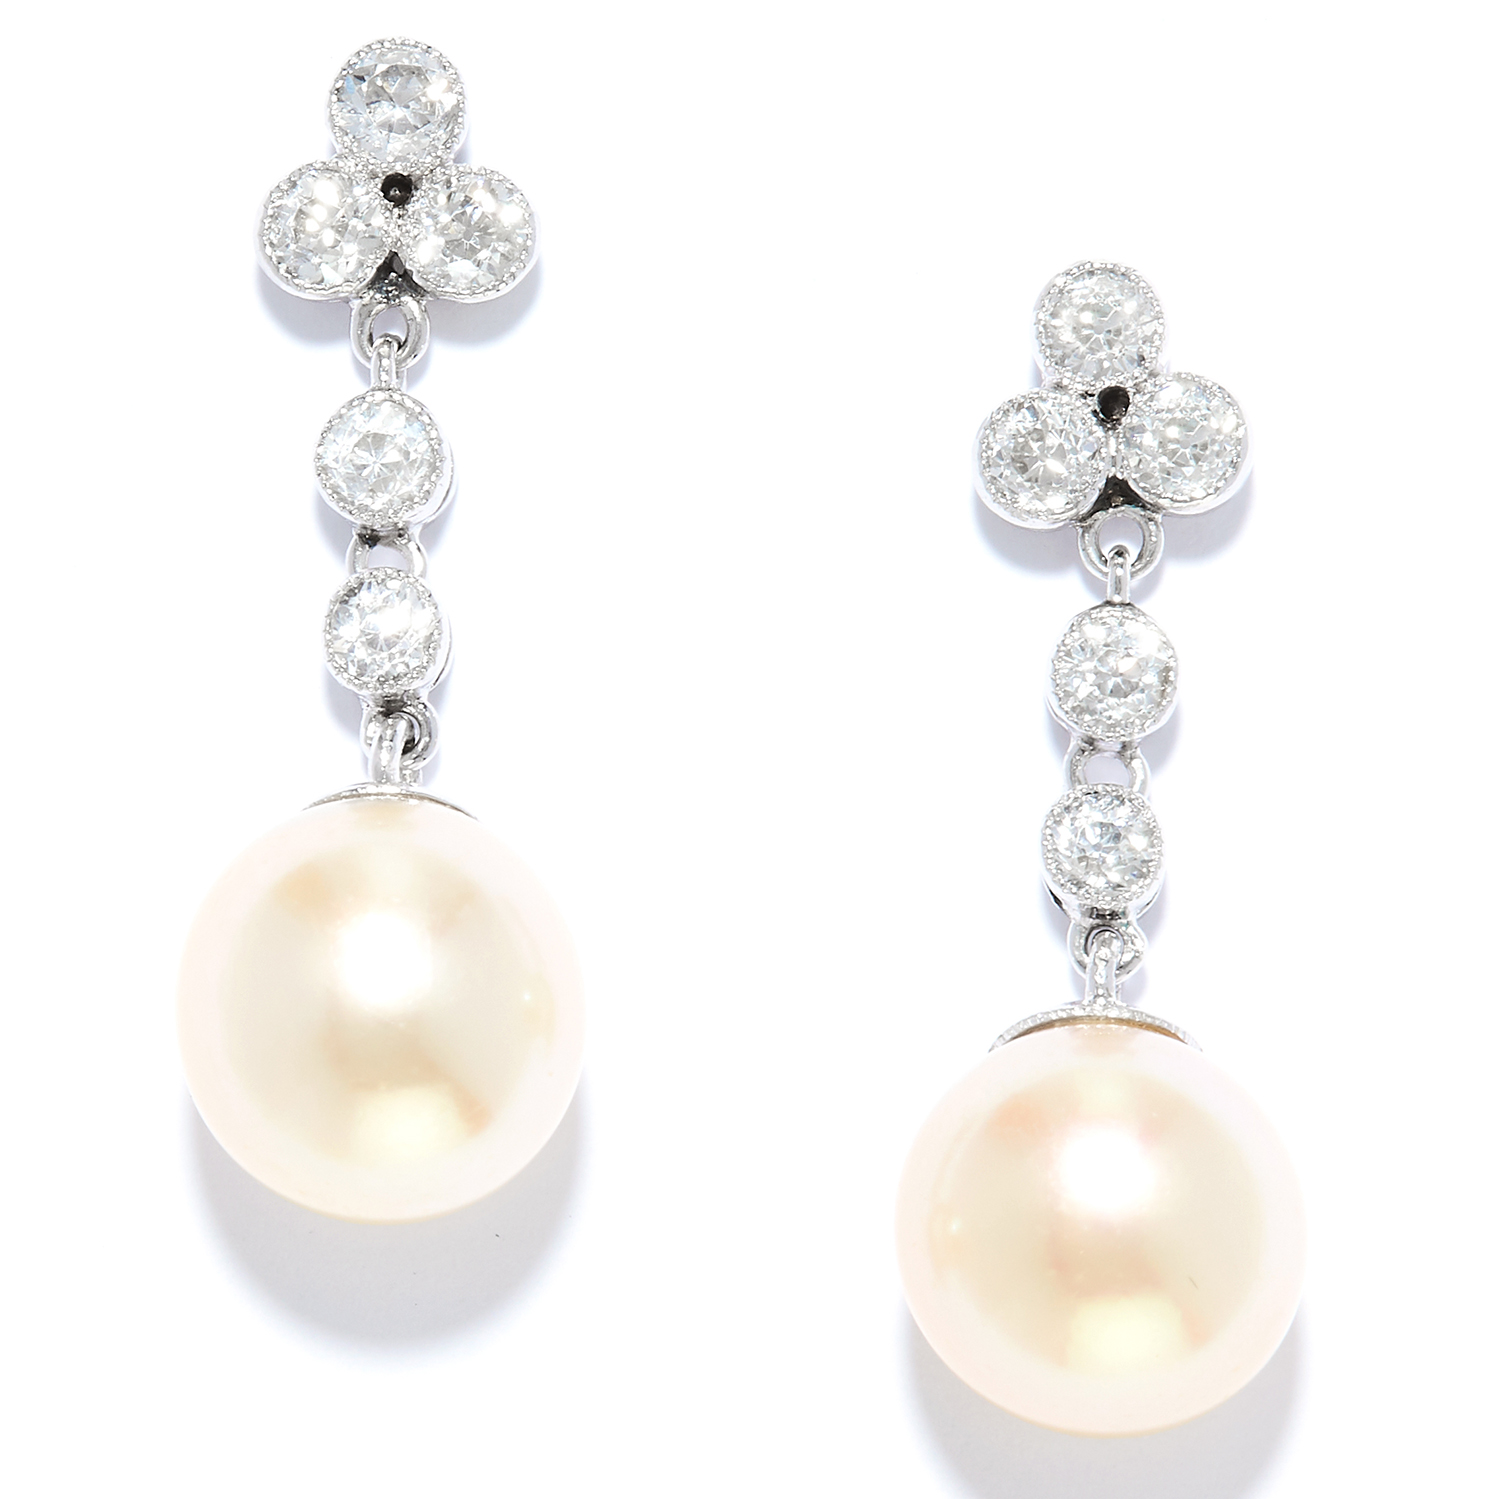 Los 39 - PEARL AND DIAMOND DROP EARRINGS in 18ct white gold or platinum, set with a row of round cut diamonds